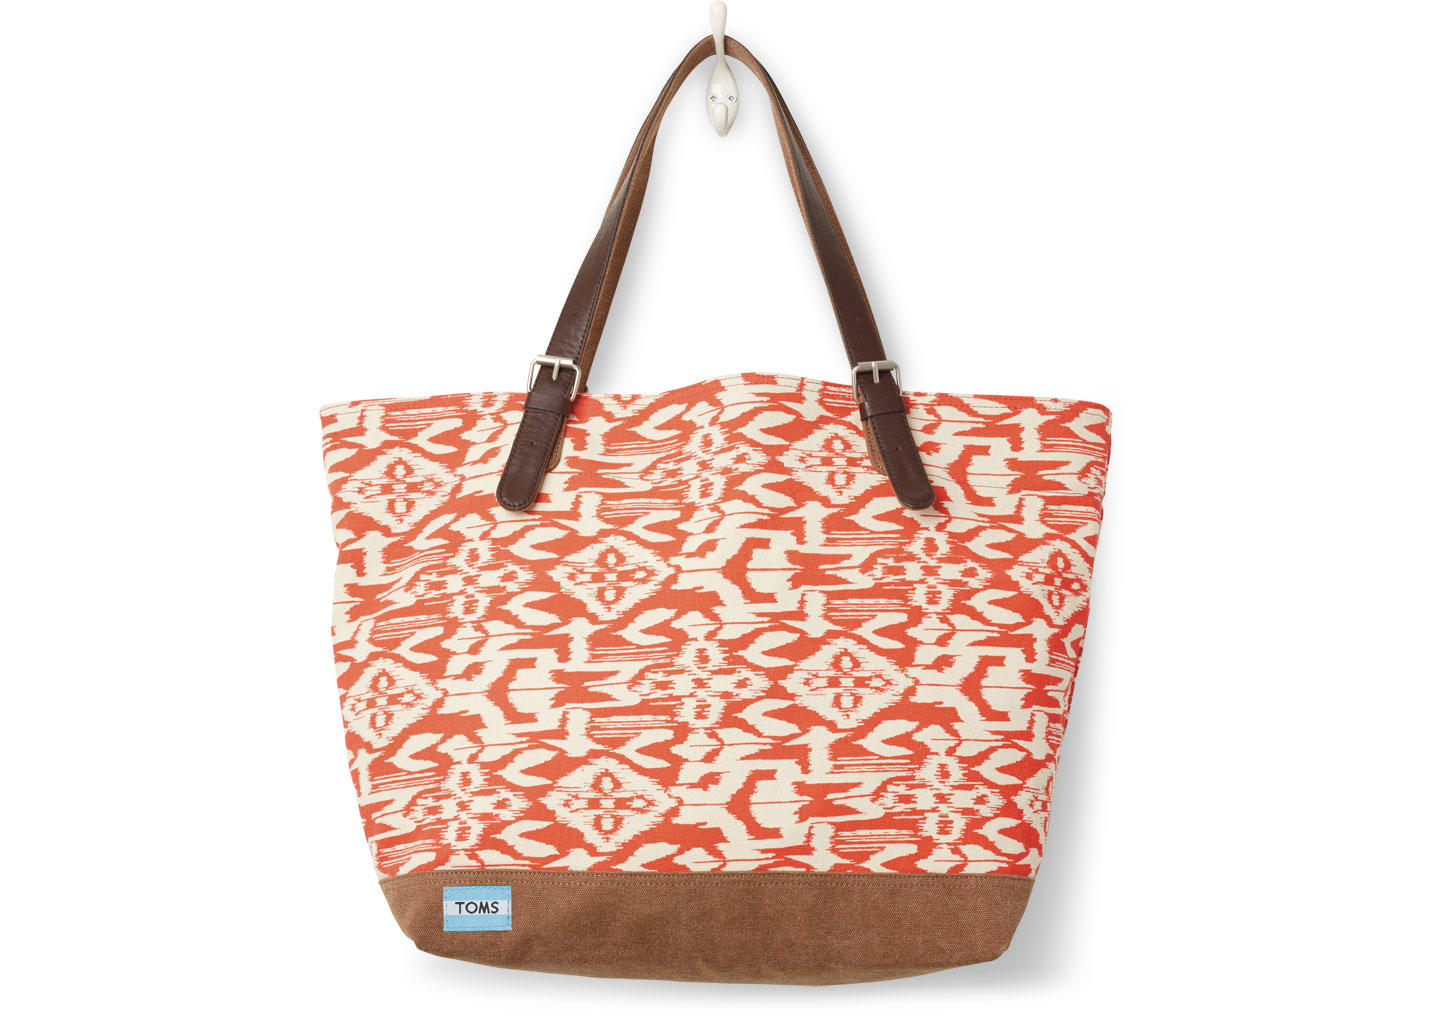 toms chili ikat canvas coastal tote bag from toms